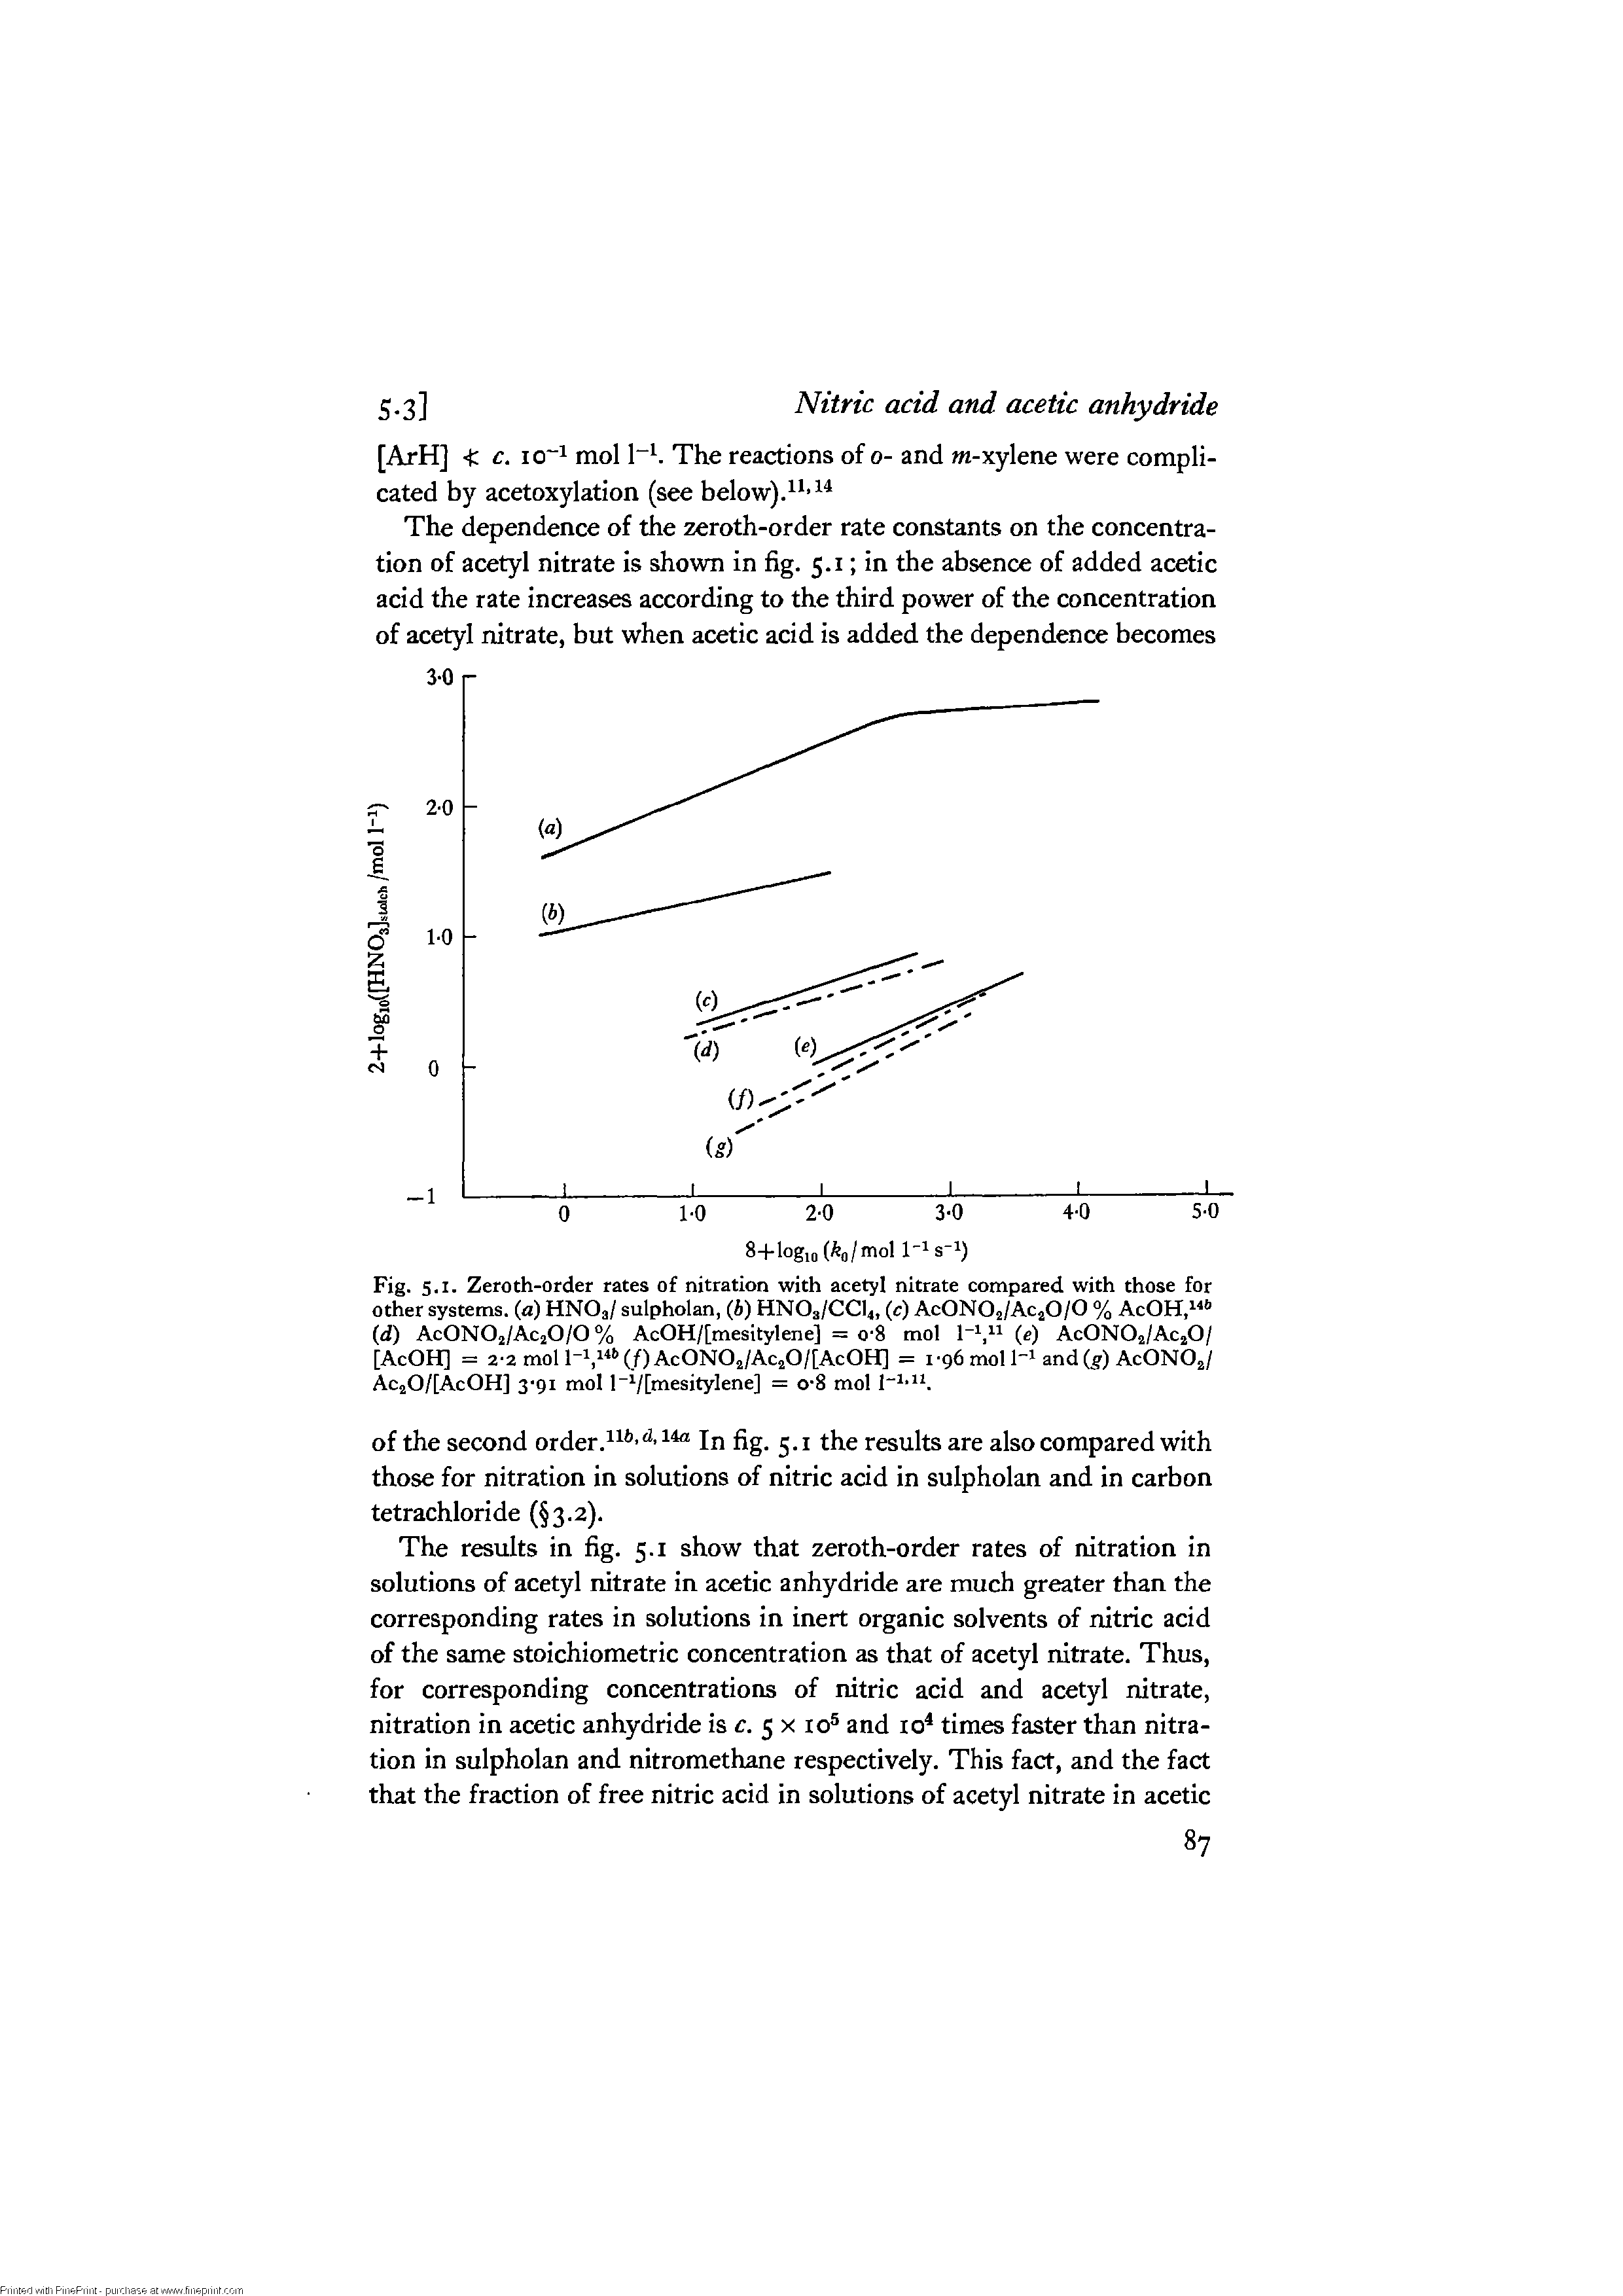 "Fig. 5.1. <a href=""/info/zeroth_order_rate_law"">Zeroth-order rates</a> of <a href=""/info/nitration_with_acetyl_nitrate"">nitration with acetyl nitrate</a> compared with those for <a href=""/info/other_systems_and"">other systems</a>, (a) HNOa/ sulpholan, (i) HNO3/CCI4, (c) AcONOj/AcjO/O % AcOH, (d) AcONOj/AcaO/O % AcOH/[mesitylene] = o-8 mol l-i,n (e) AcONOj/AcaO/ [AcOH] = 2-2moll-i,ii >(/)AcONOa/AcaO/[AcOH] = 1-96 mol l-i and (g) AcONOa/ AcaO/[AcOH] 3 9i mol l-i/[mesitylene] = o-8 mol 1-i H."